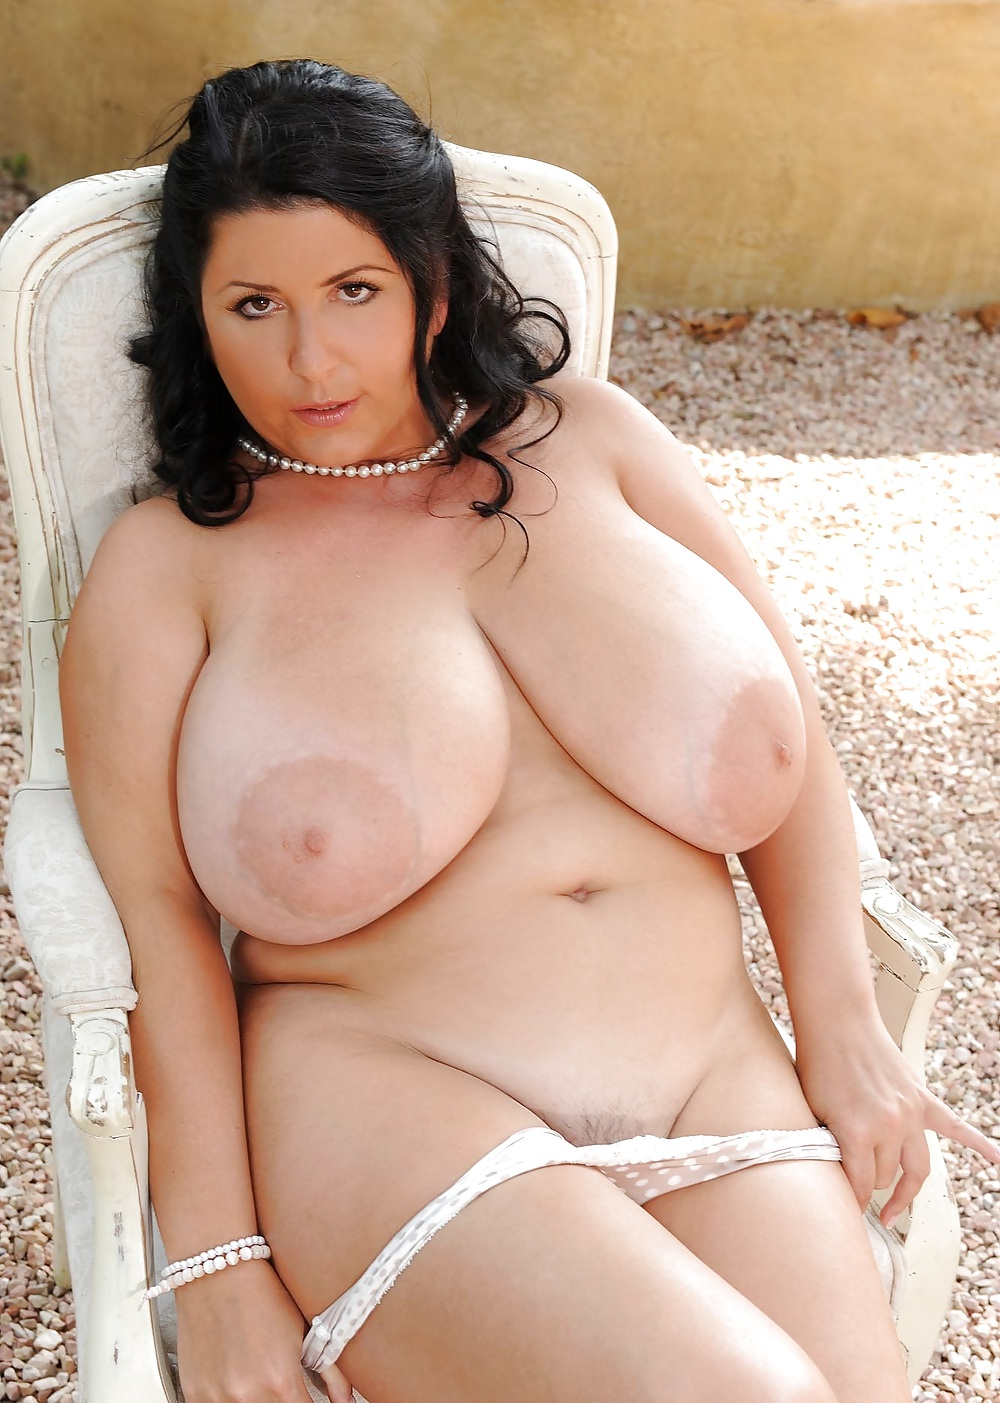 huge busty babes the classified